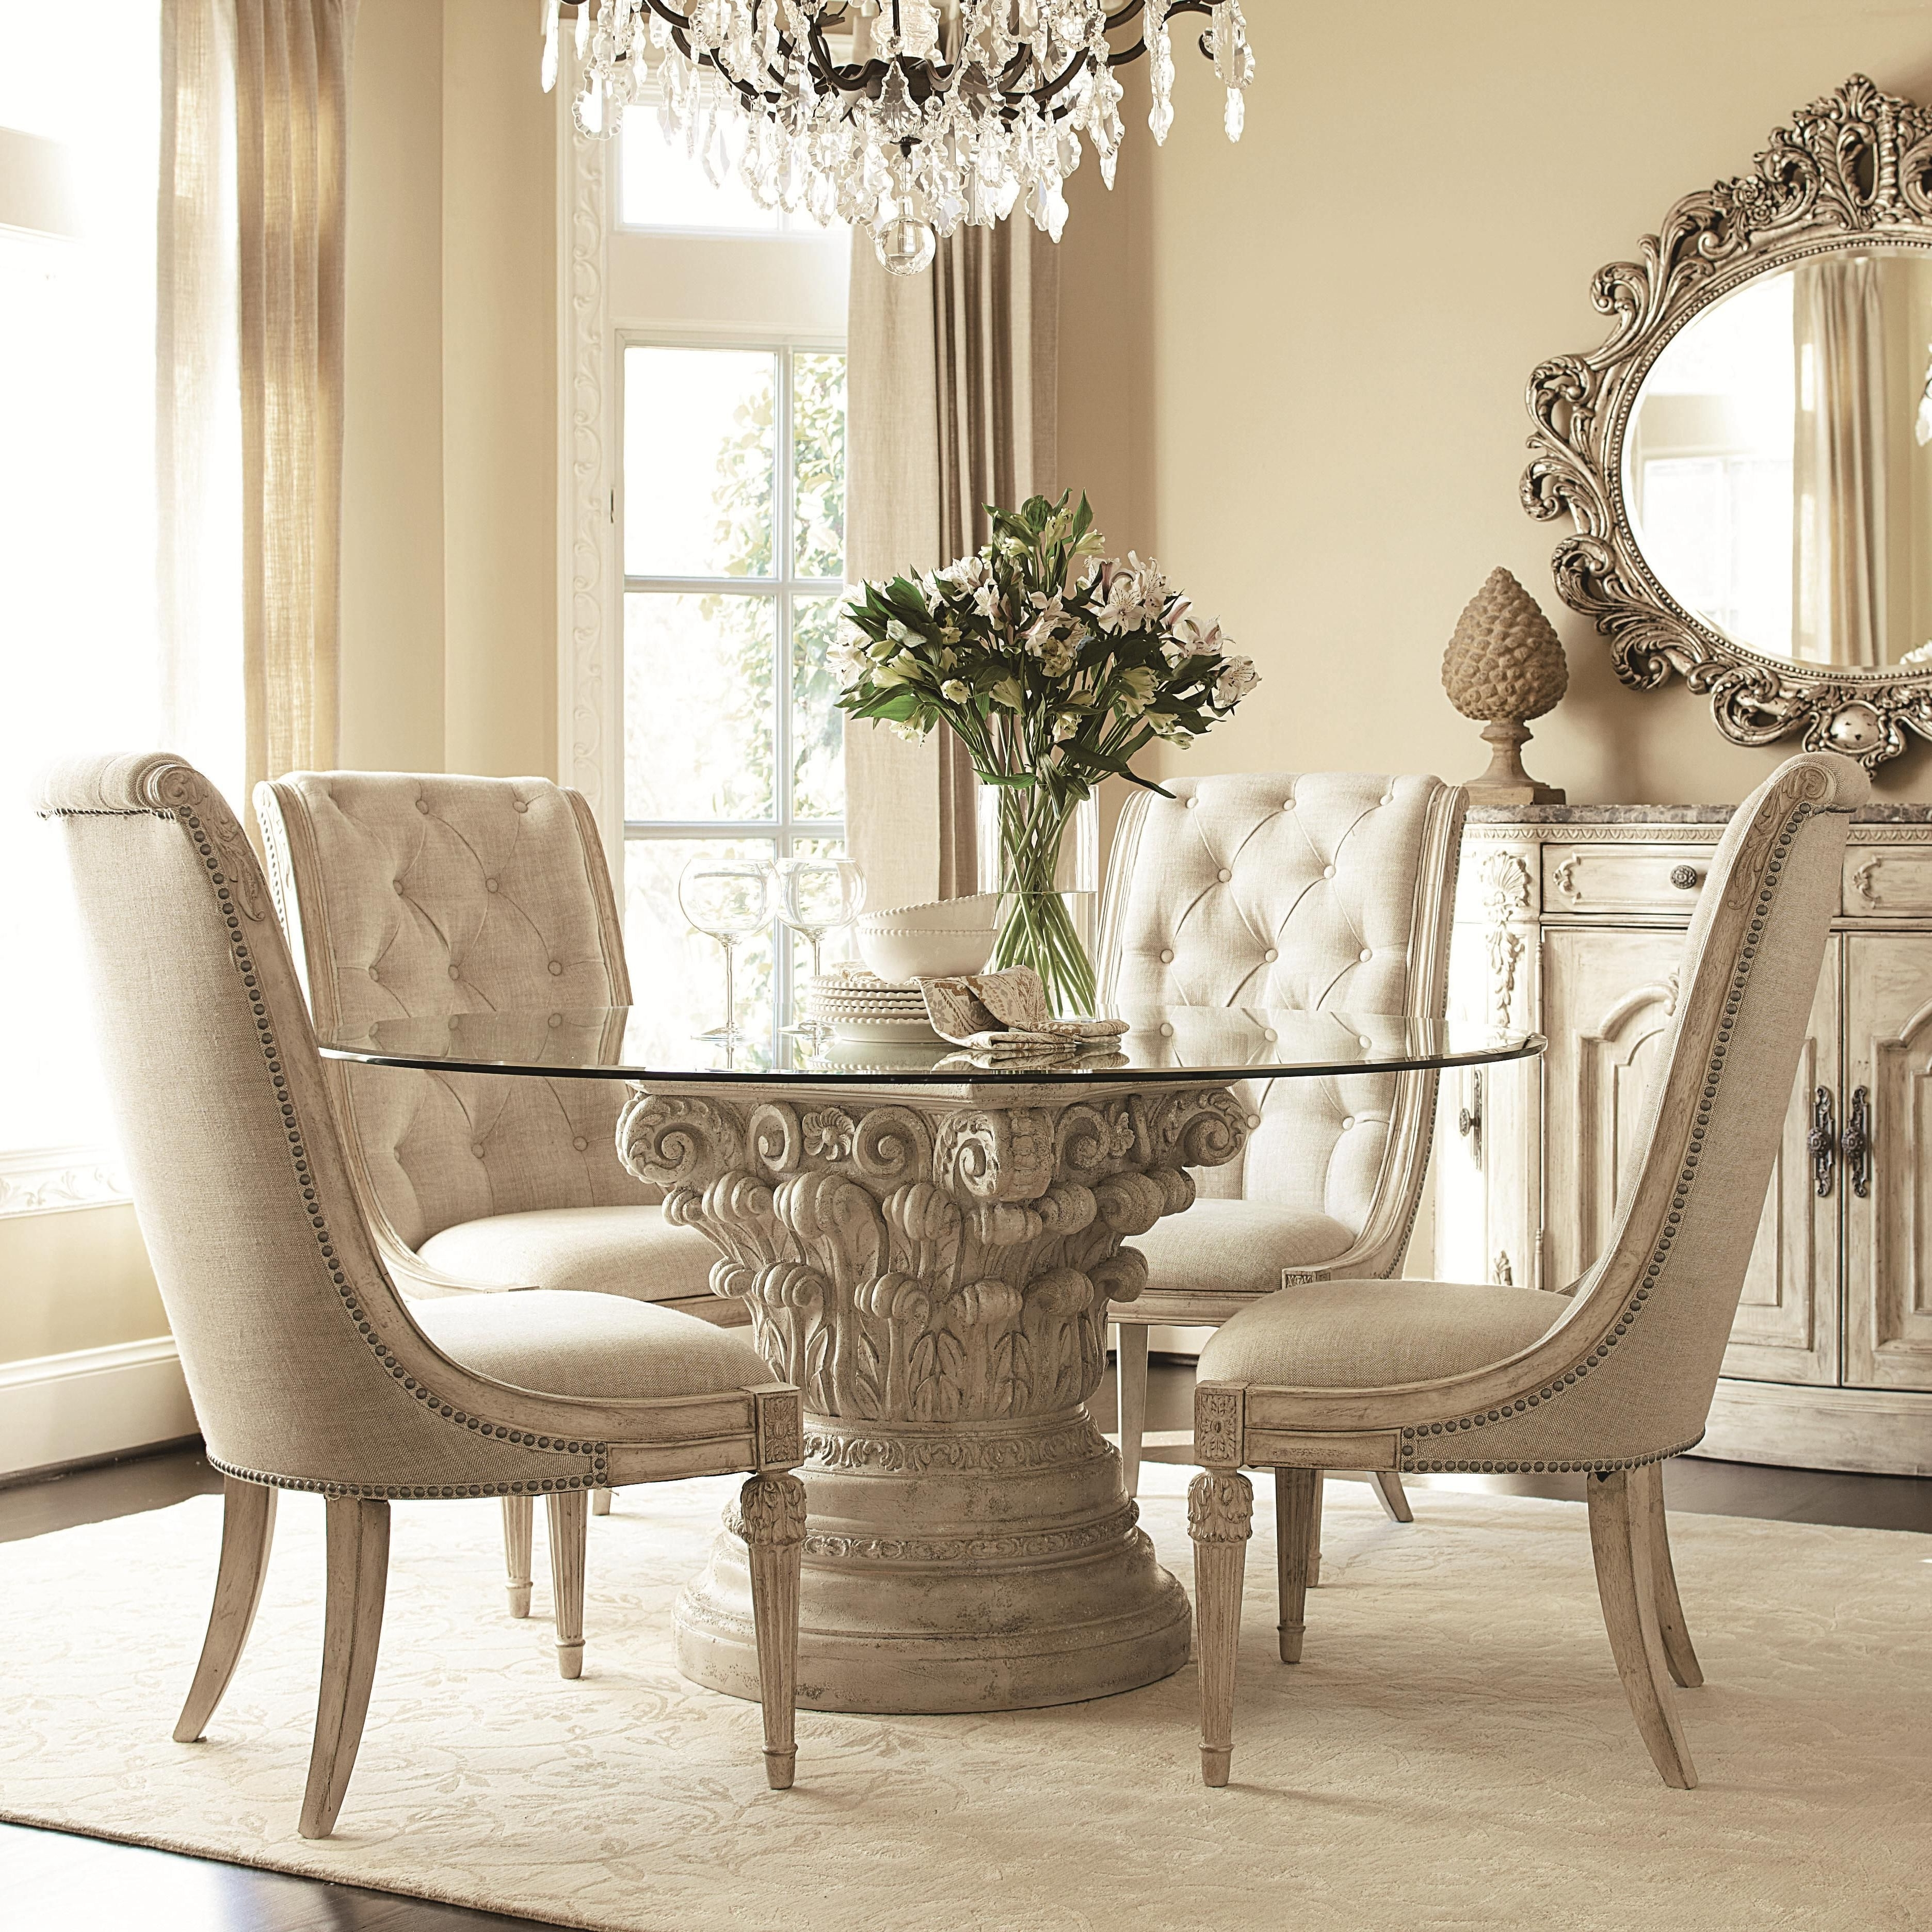 Jessica Mcclintock Home – The Boutique Collection 5 Piece Round With Well Liked Candice Ii 5 Piece Round Dining Sets (Gallery 24 of 25)